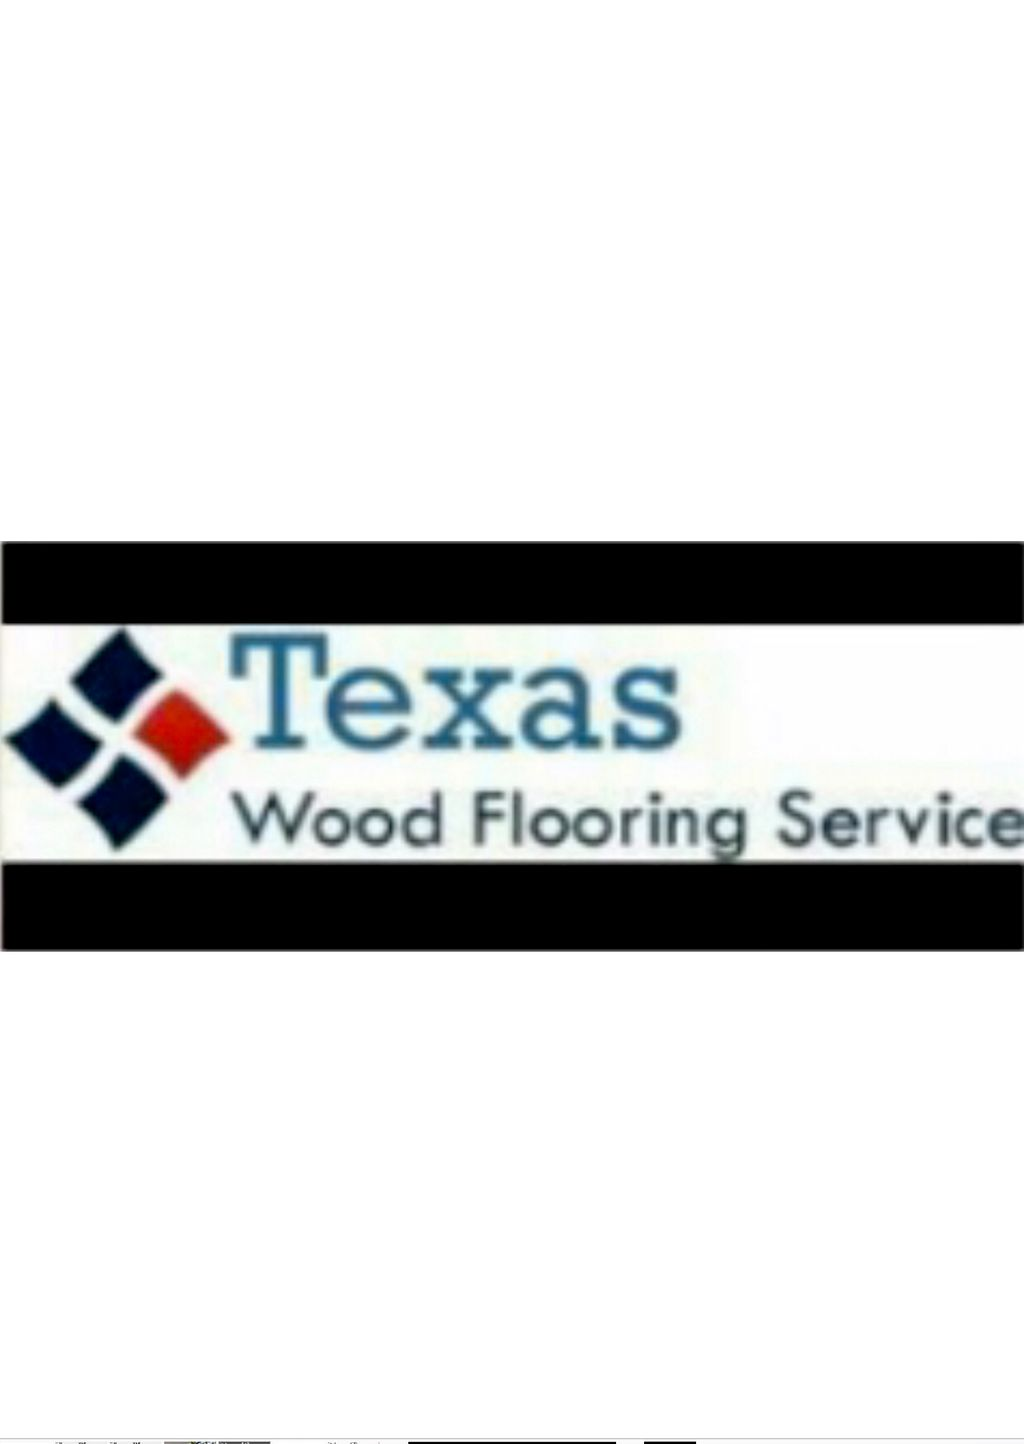 Texas Wood Flooring Service LLC